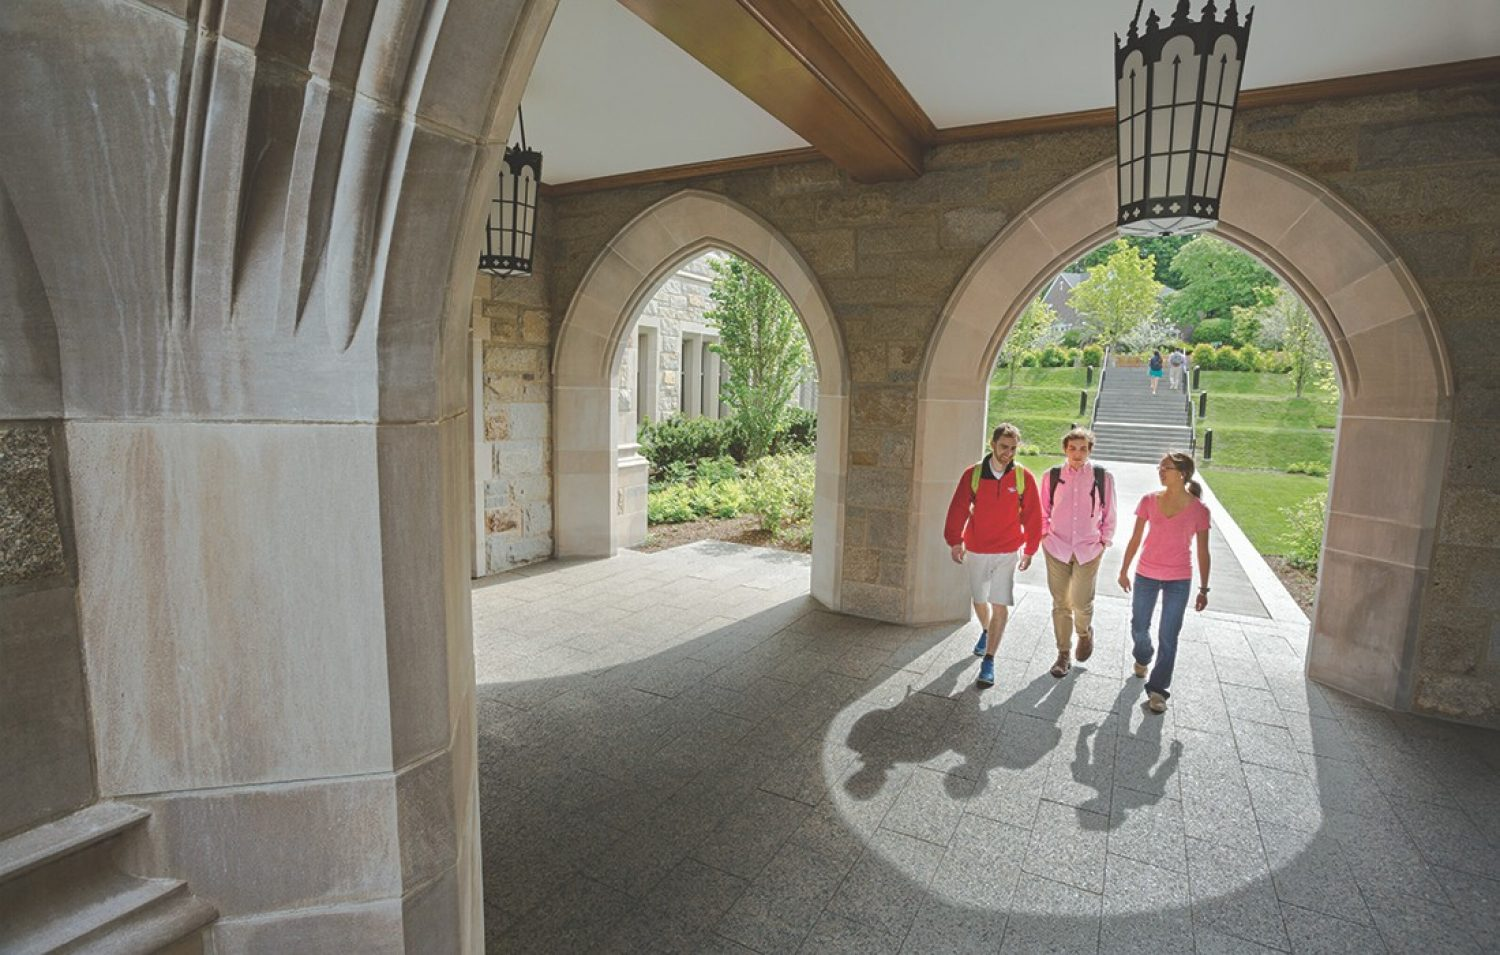 Students walk through arches